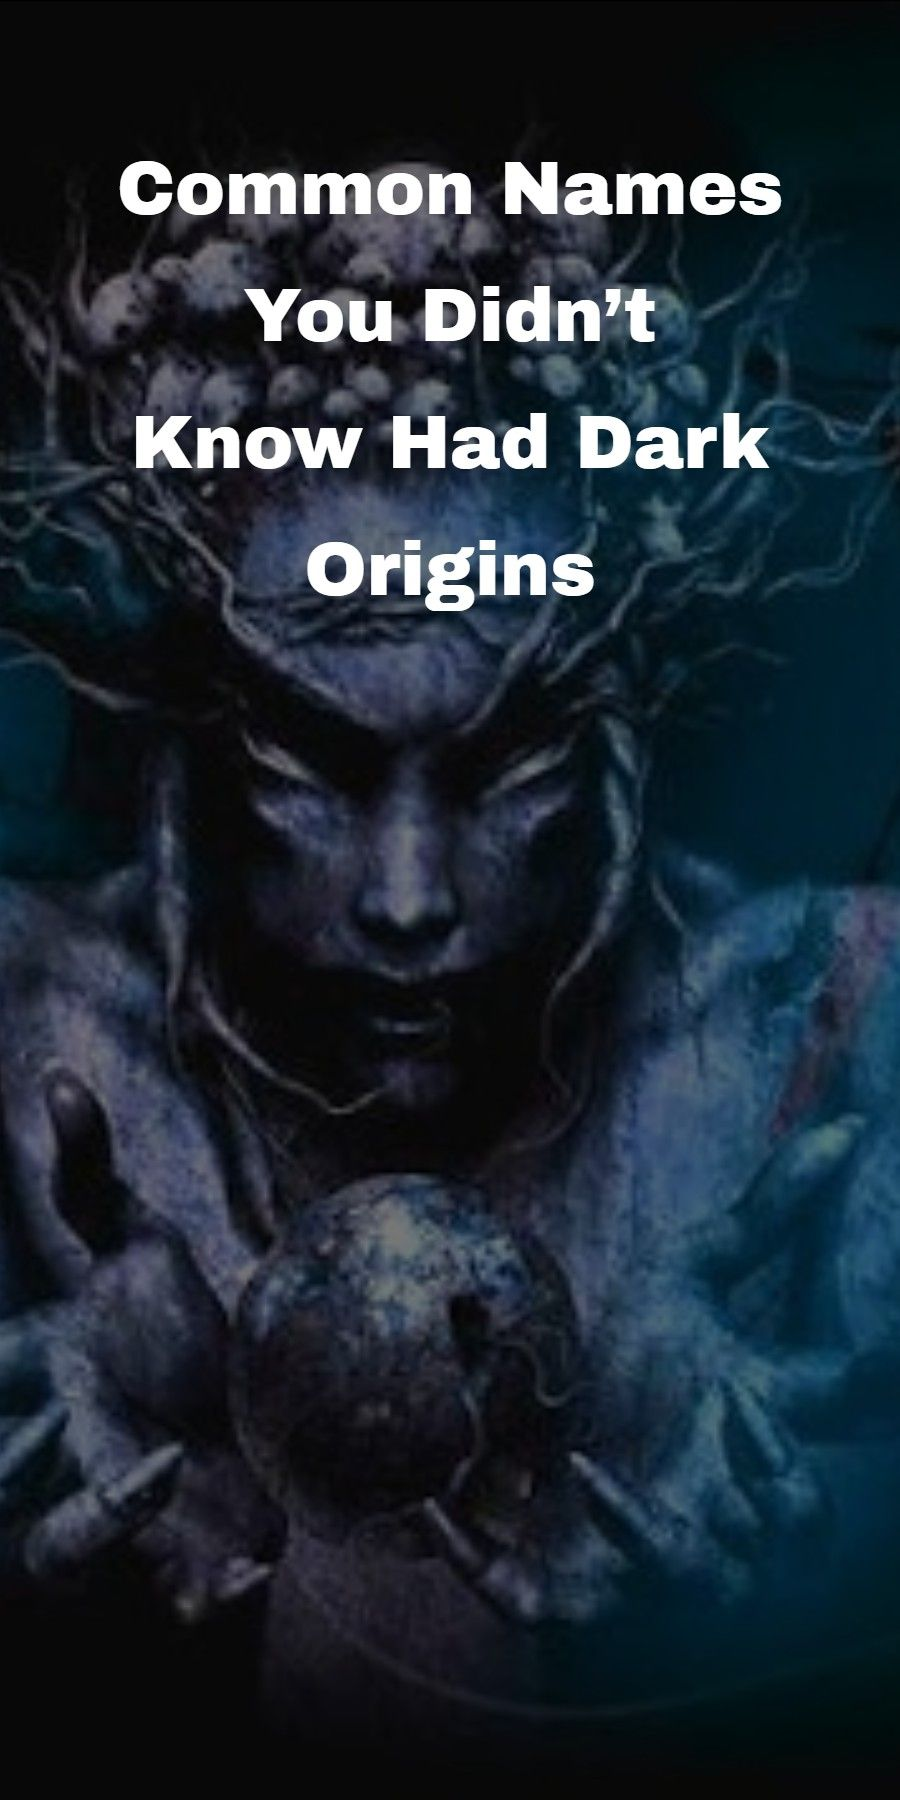 Names You Didn't Know Had Dark Origins (With images ...